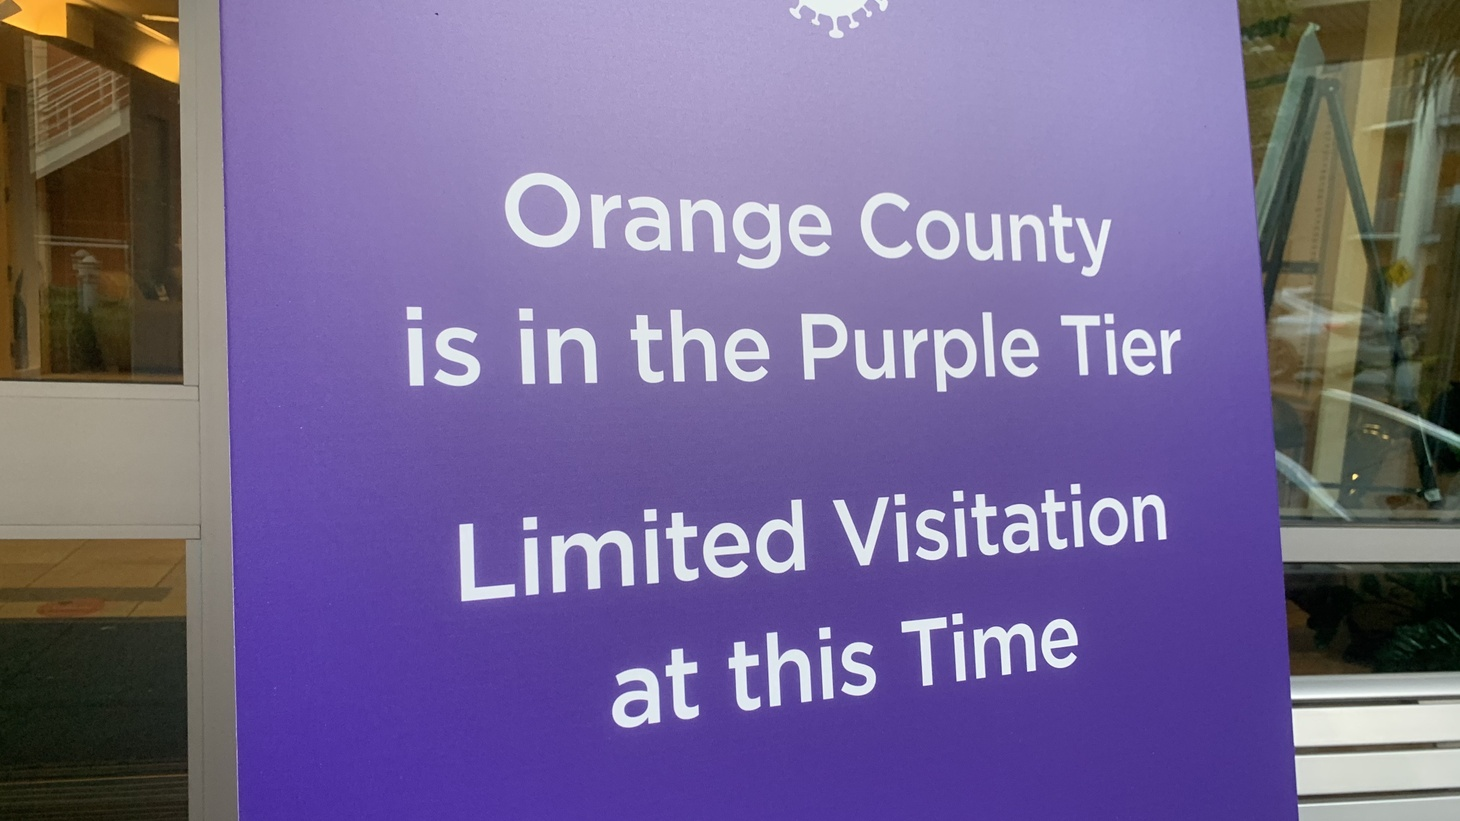 A sign at St. Jude Hospital in Fullerton says Orange County is in the purple tier of Gov. Gavin Newsom's reopening plan, and visits are currently limited. November 30, 2020.